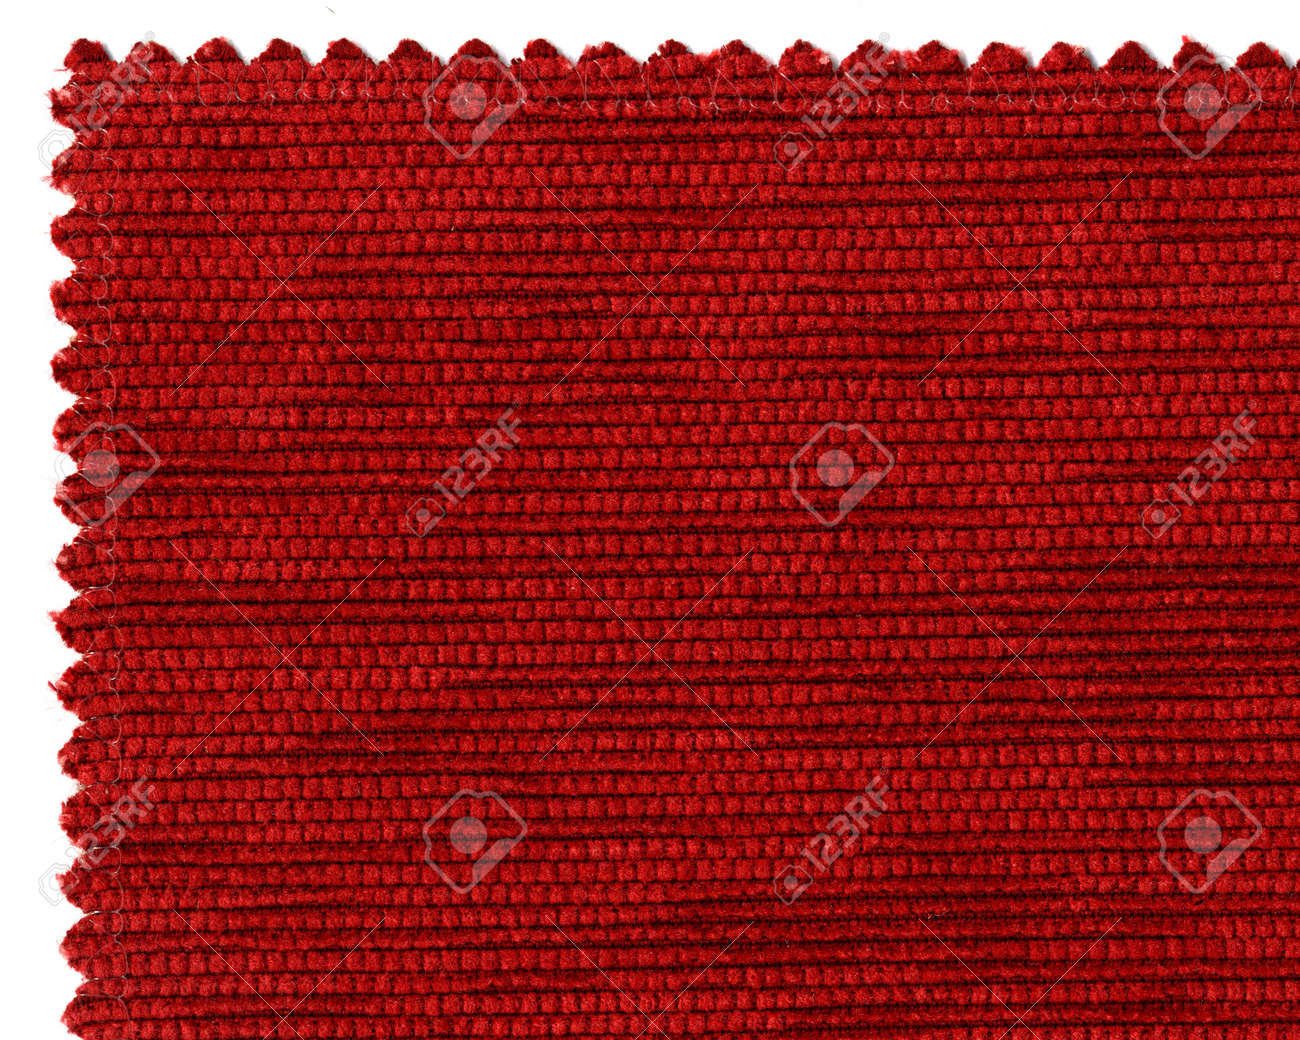 Closer Image Of Textile Sample On White Background Stock Photo ...